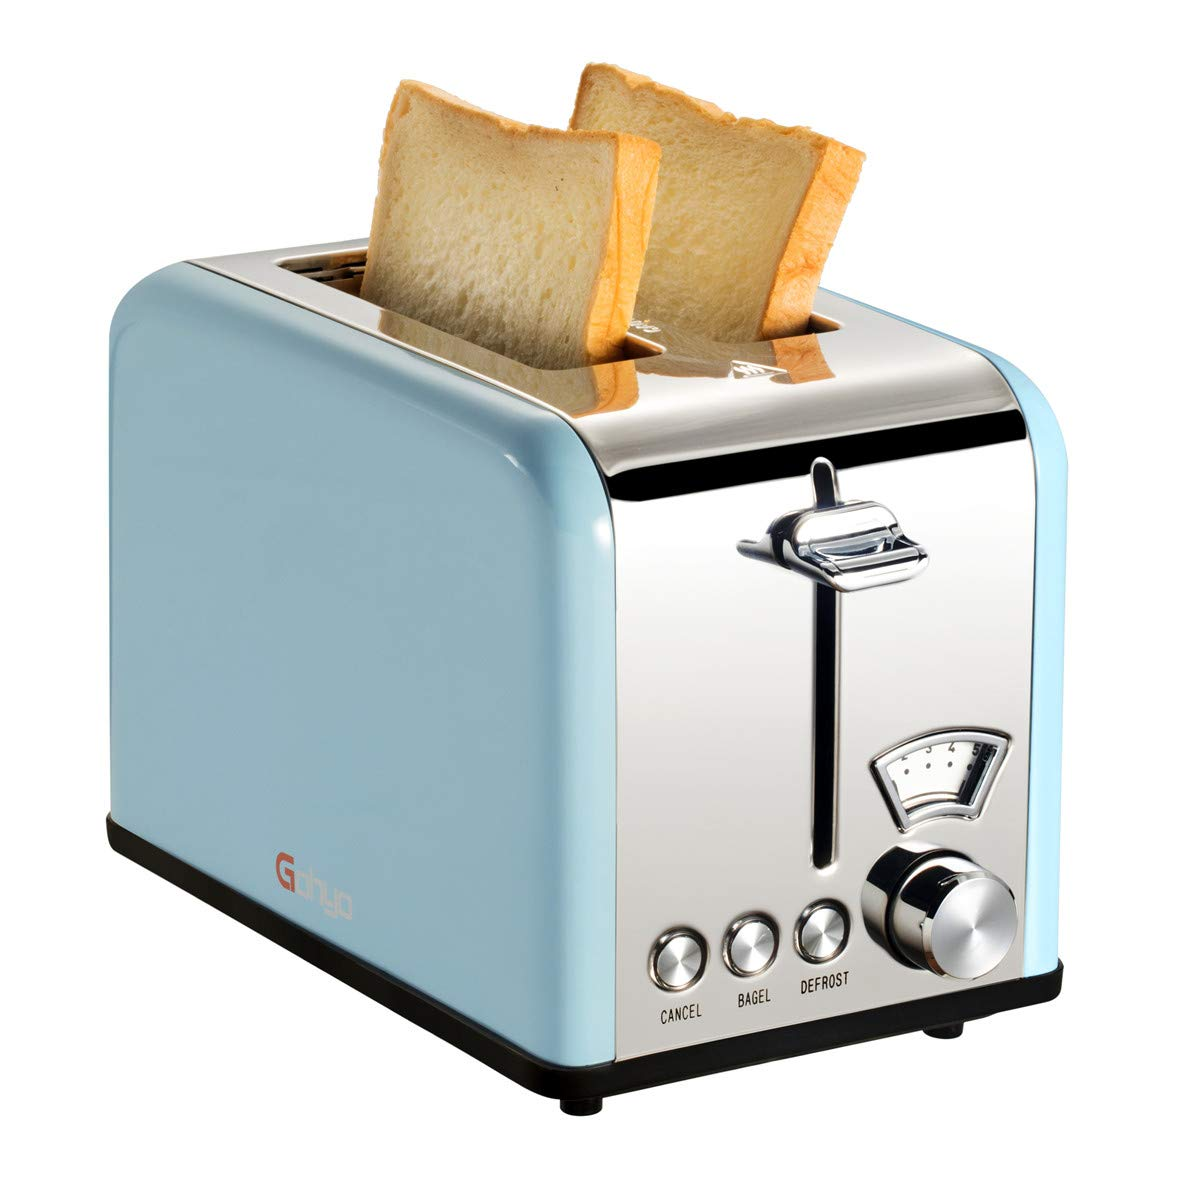 Gohyo 2 Slice Toaster 100% Stainless Steel with Wide Slots & Removable Crumb Tray for Bread & Bagels (Blue) by Gohyo